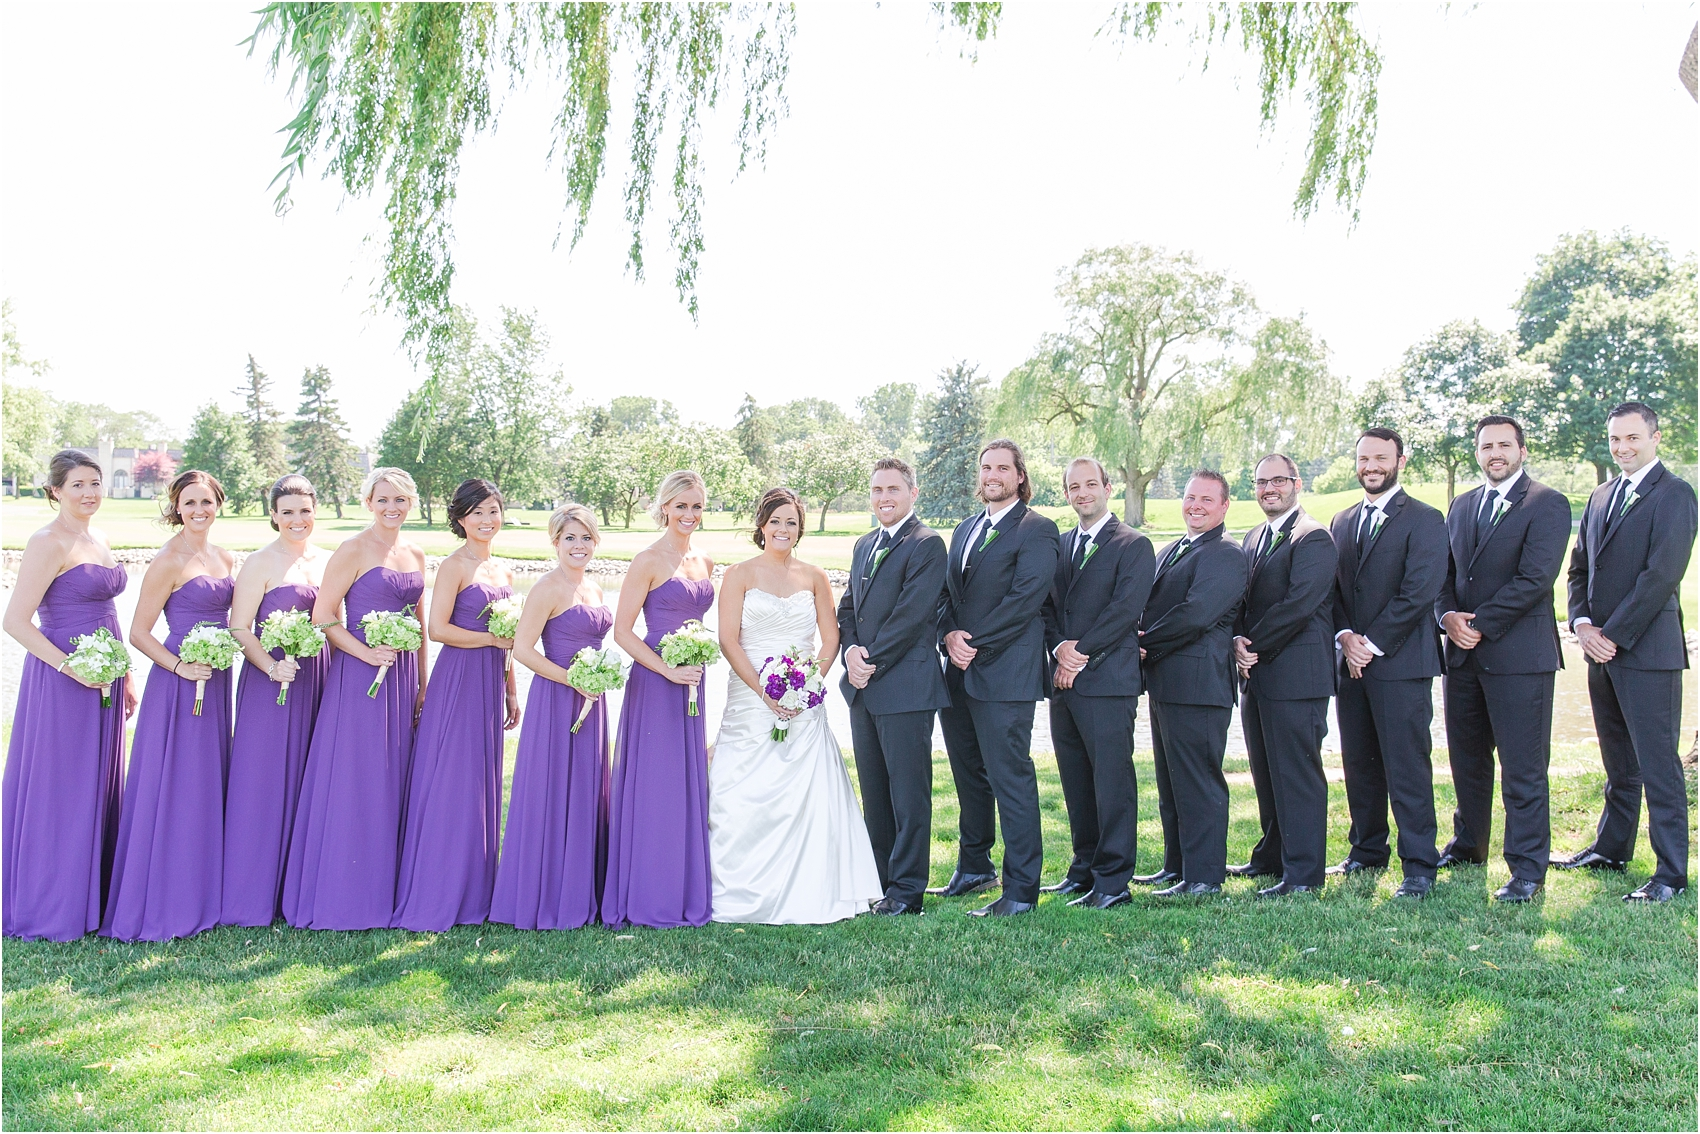 classic-wedding-photos-at-great-oaks-country-club-in-rochester-hills-mi-by-courtney-carolyn-photography_0033.jpg